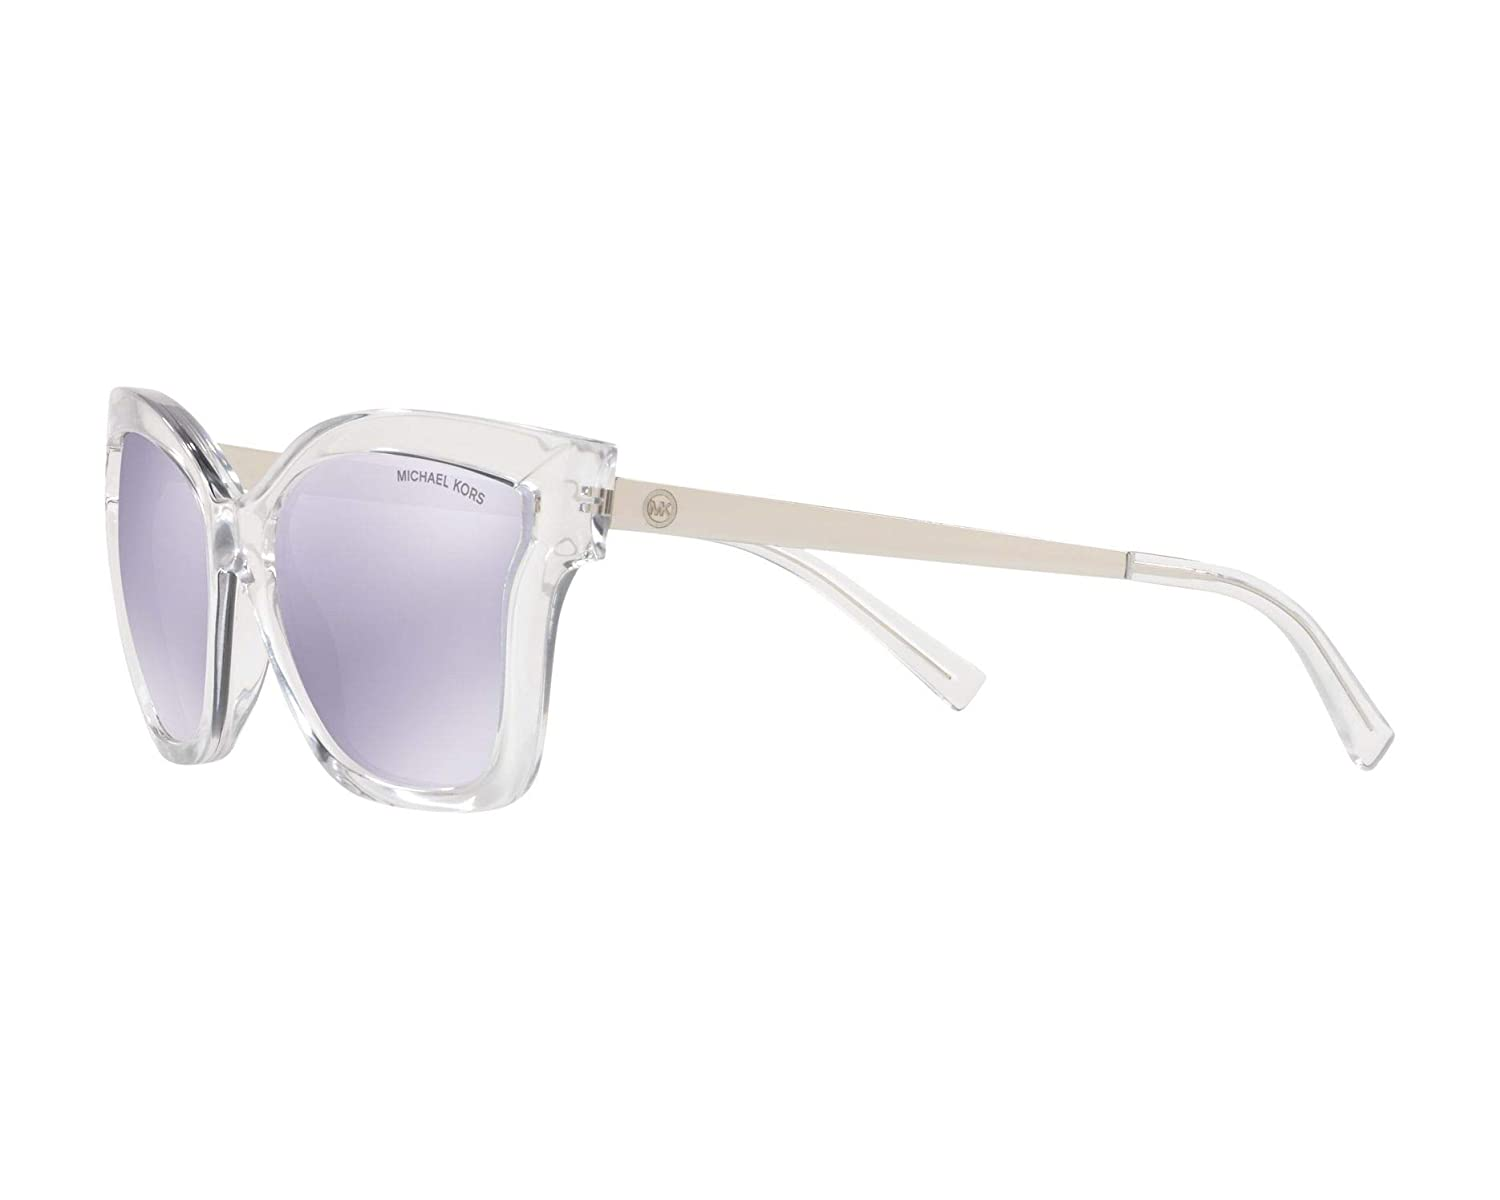 6b60661a6e Sunglasses Michael Kors MK 2072 30502S CRYSTAL CLEAR INJECTED at Amazon  Women s Clothing store